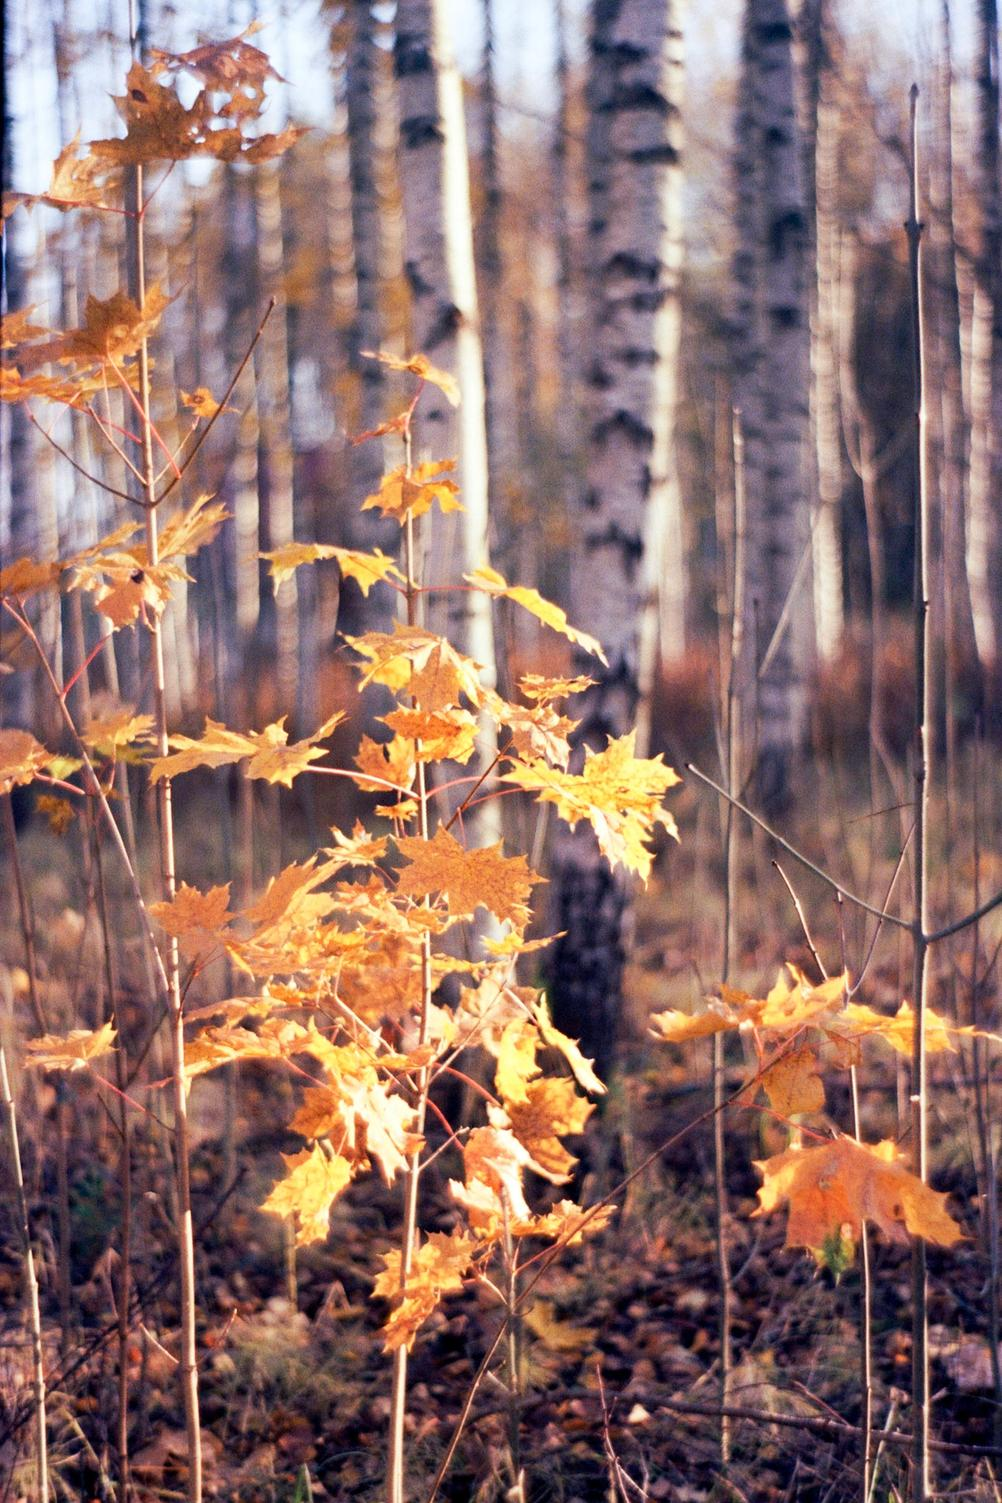 Photo of a small tree with leaves in autumn colors.